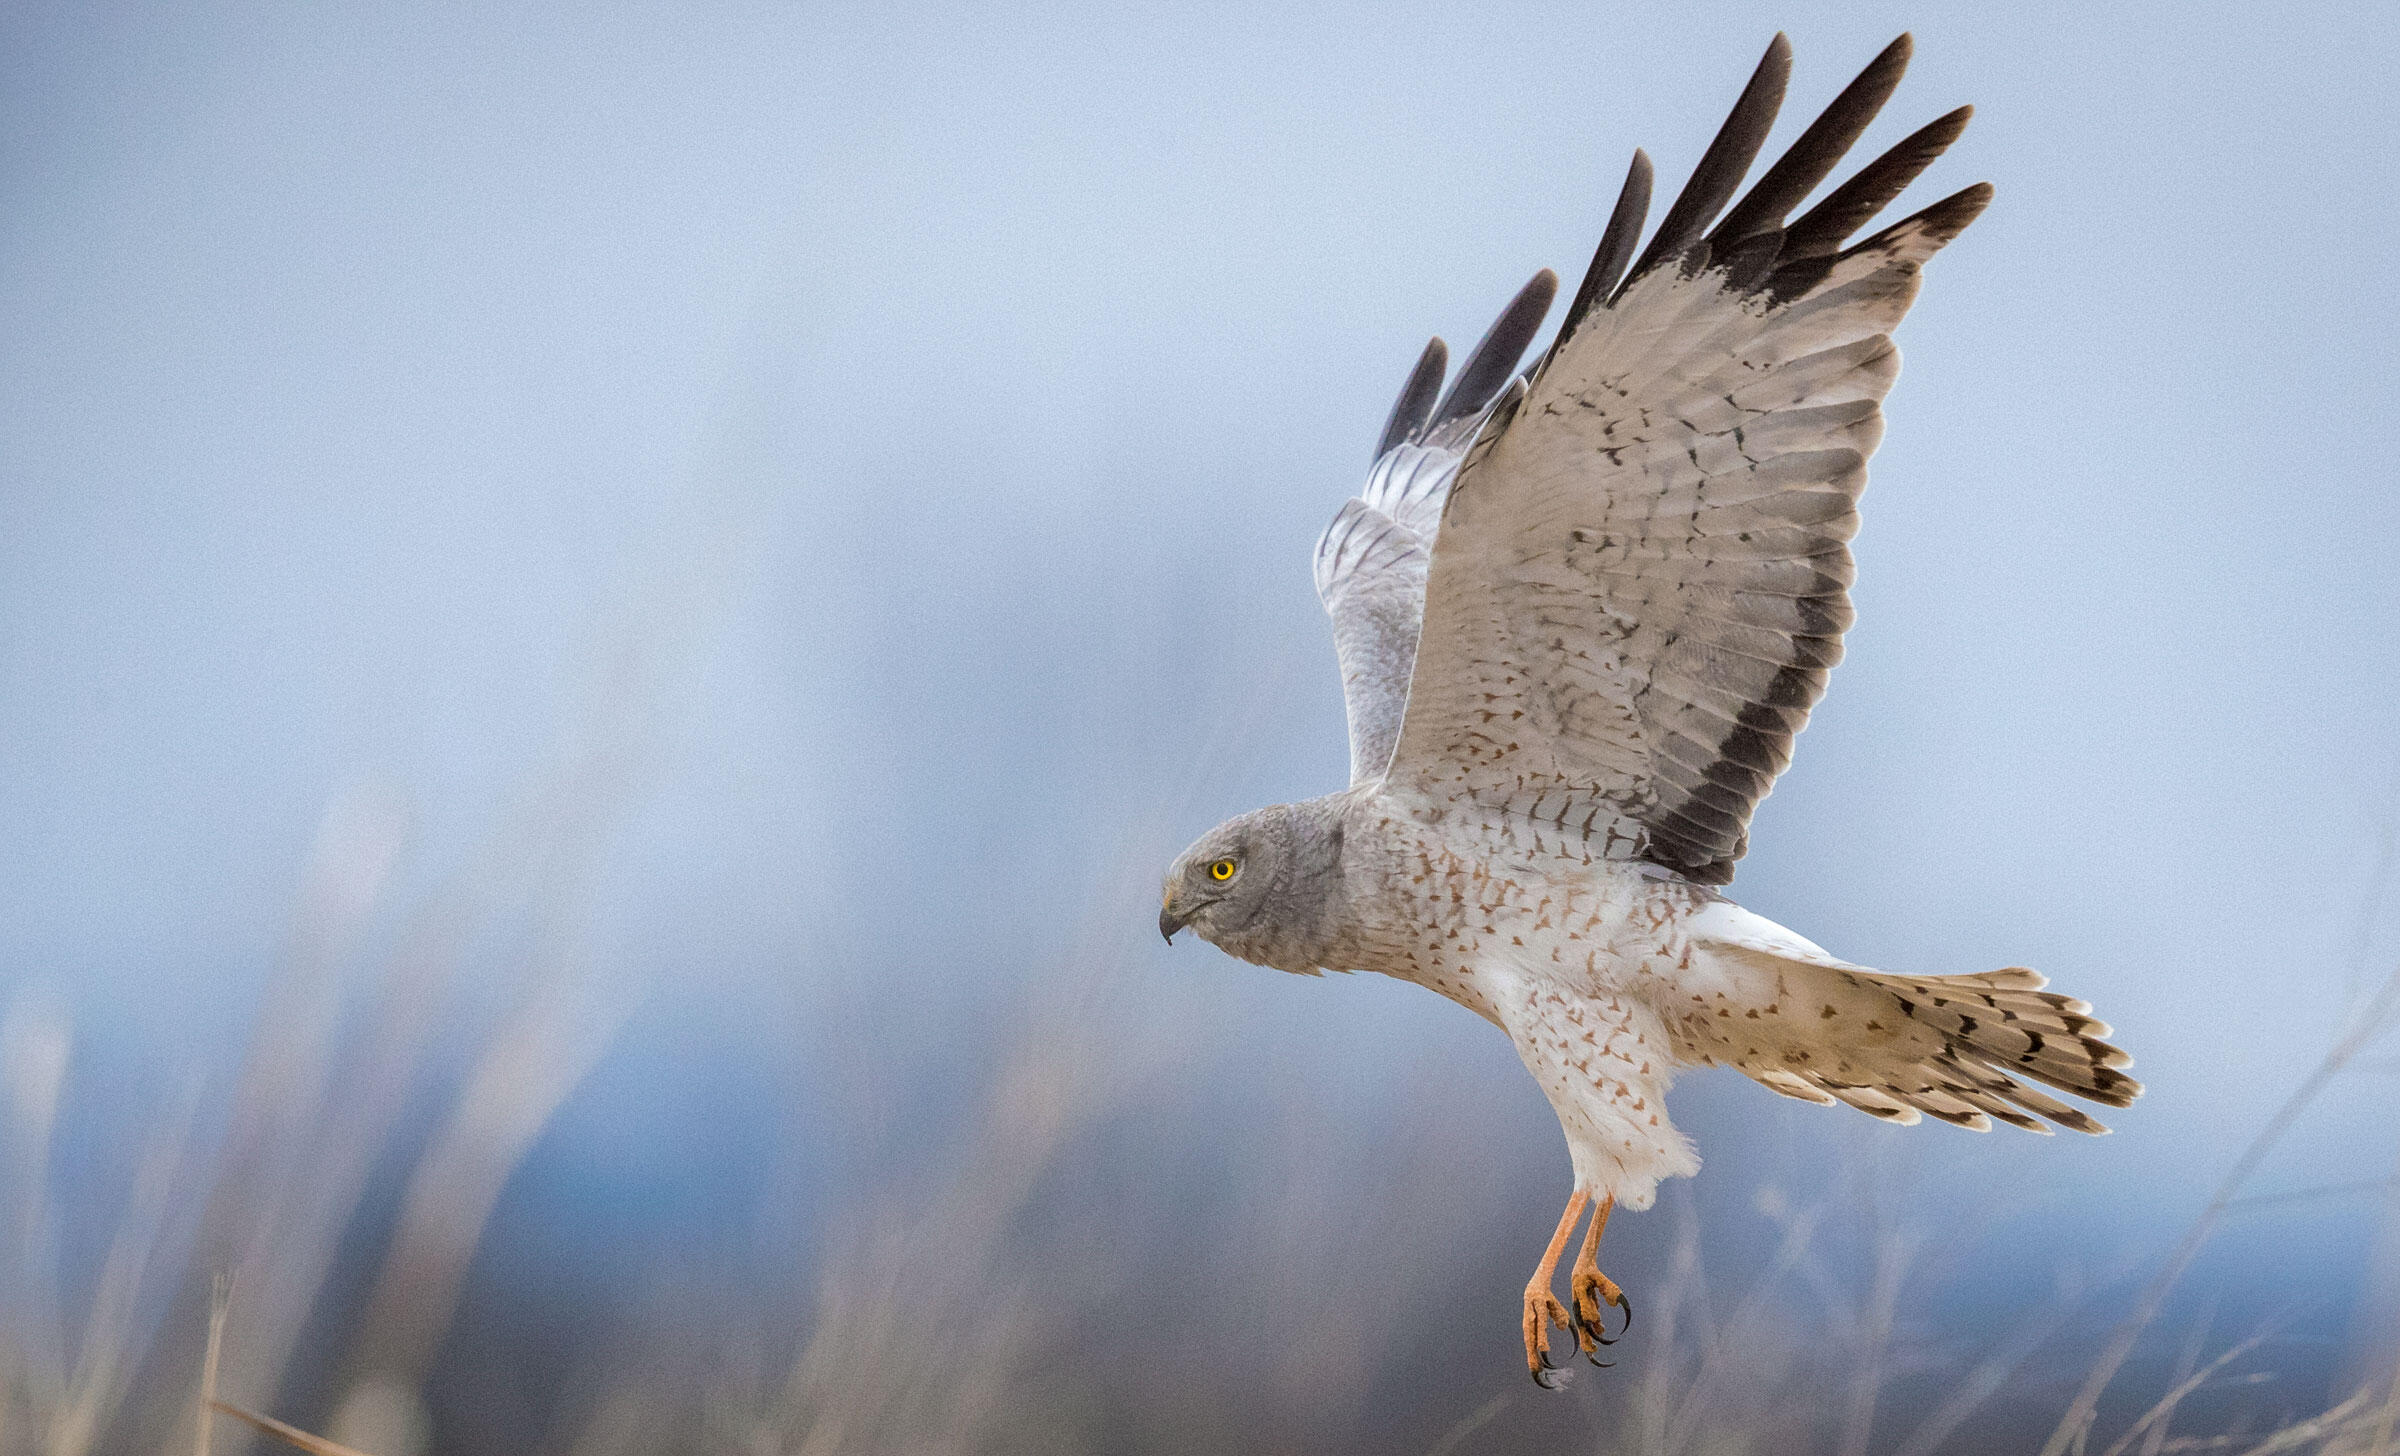 A Northern Harrier flies in the air.